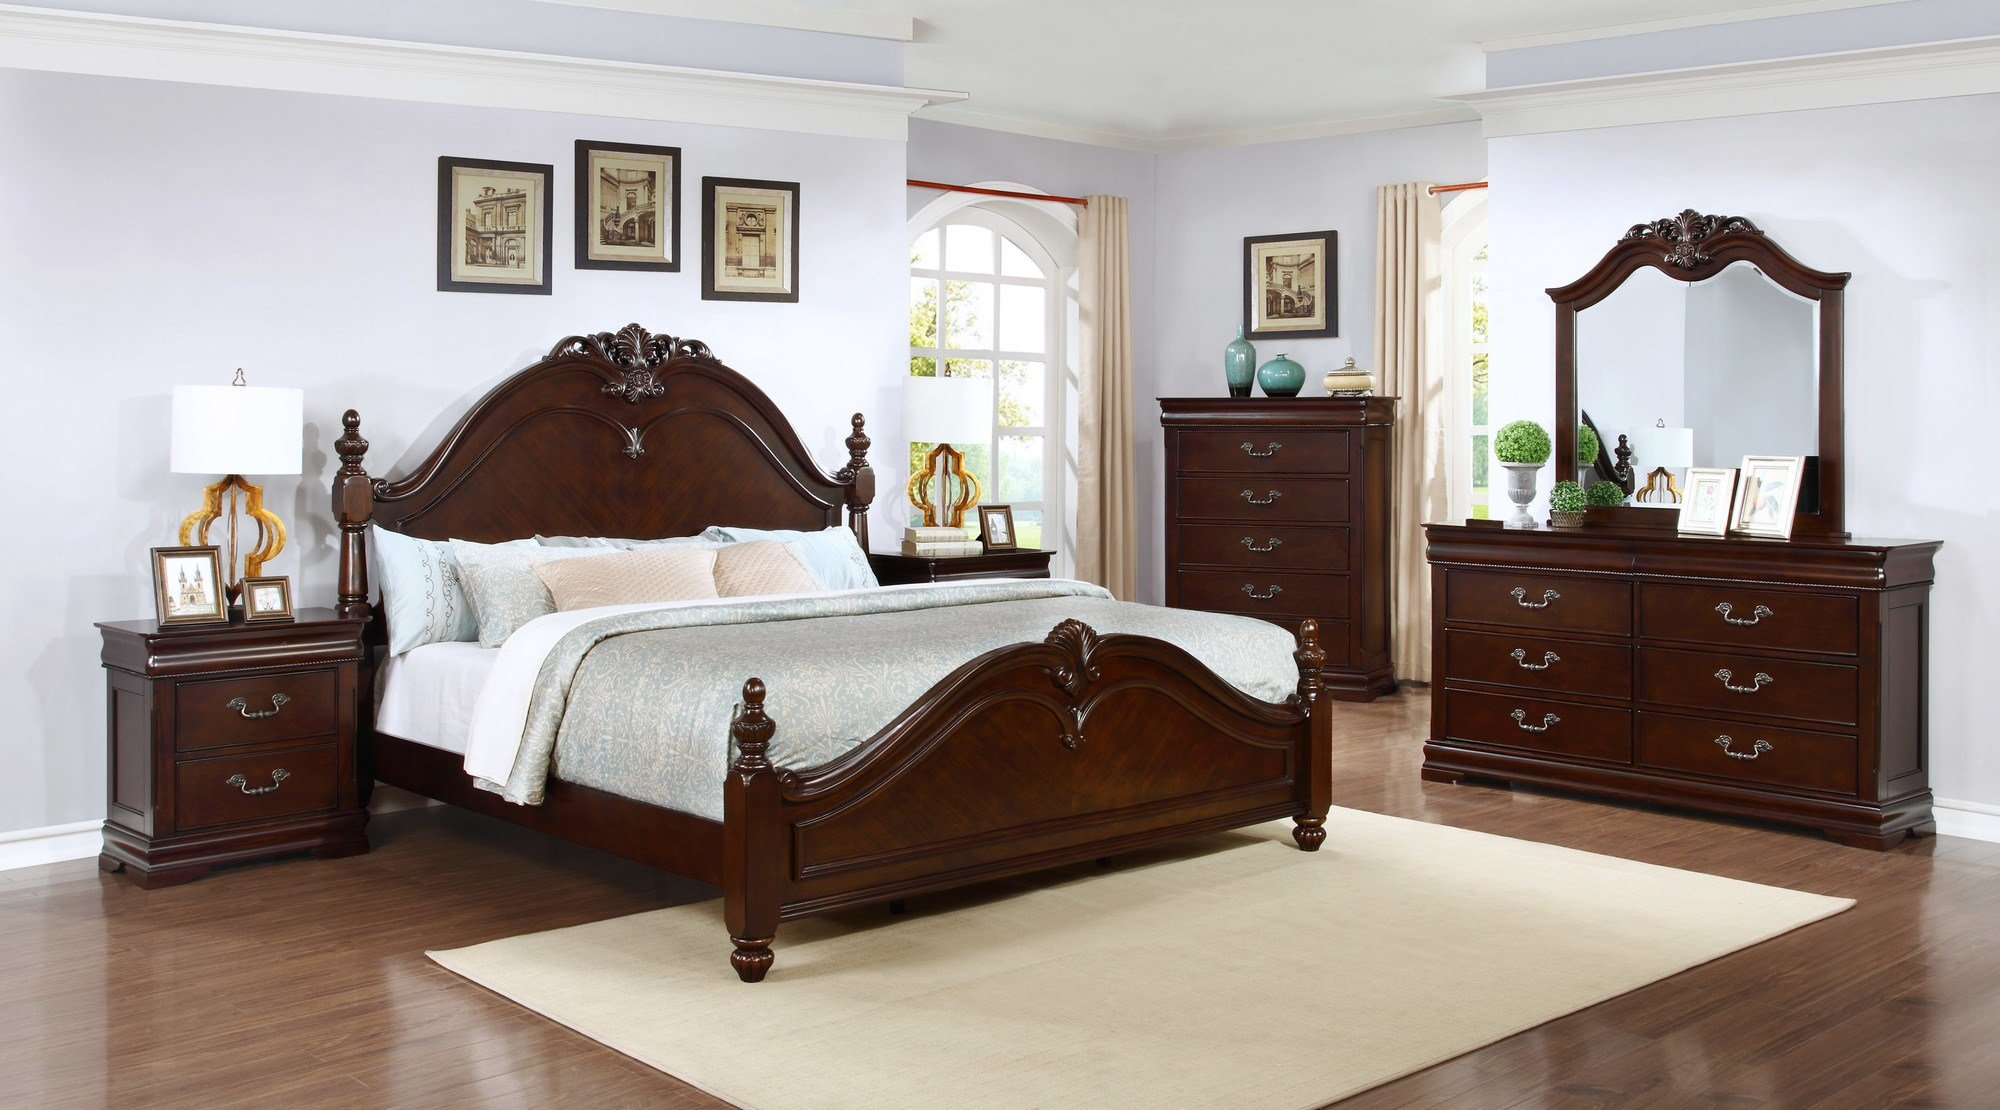 Best Quality Furniture Panel 4 Piece Bedroom Set Ebay With Pictures